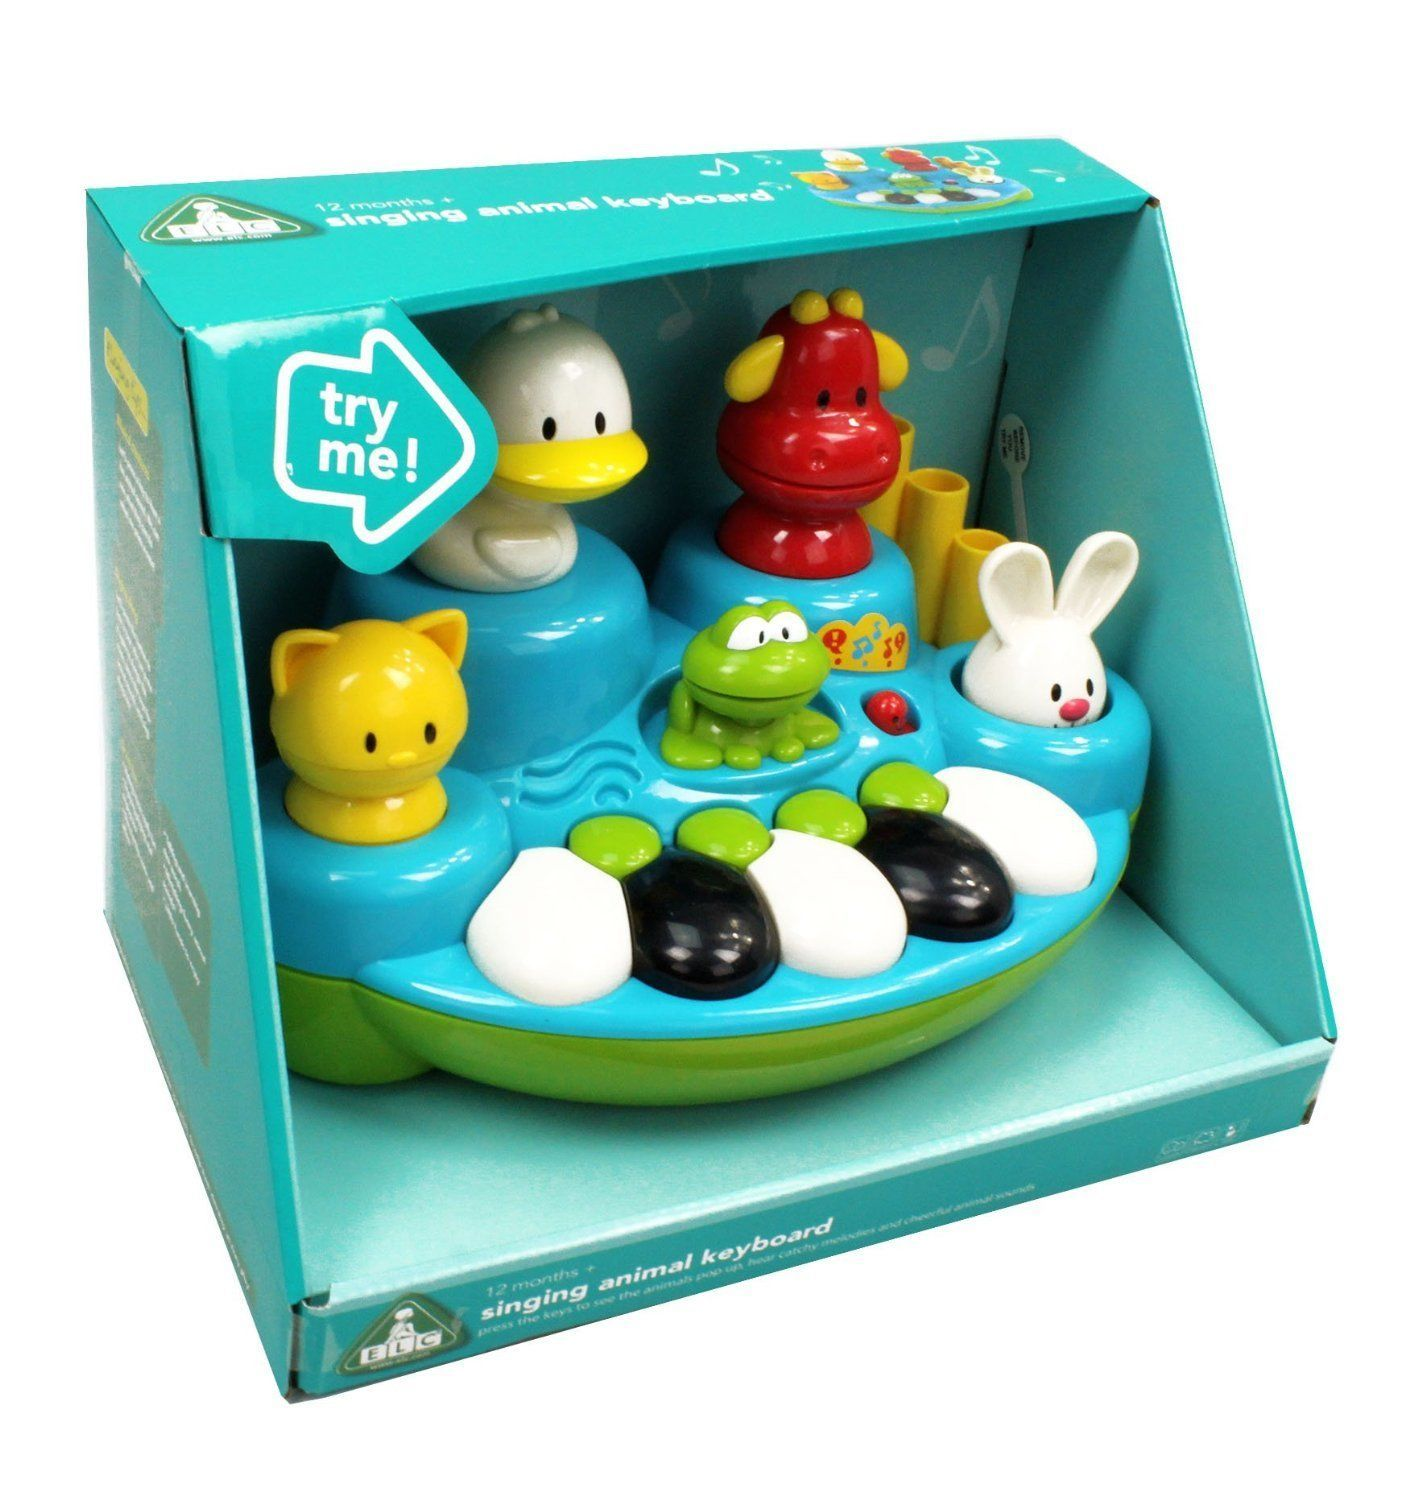 ELC Singing Animal Keyboard - Early Learning Centre